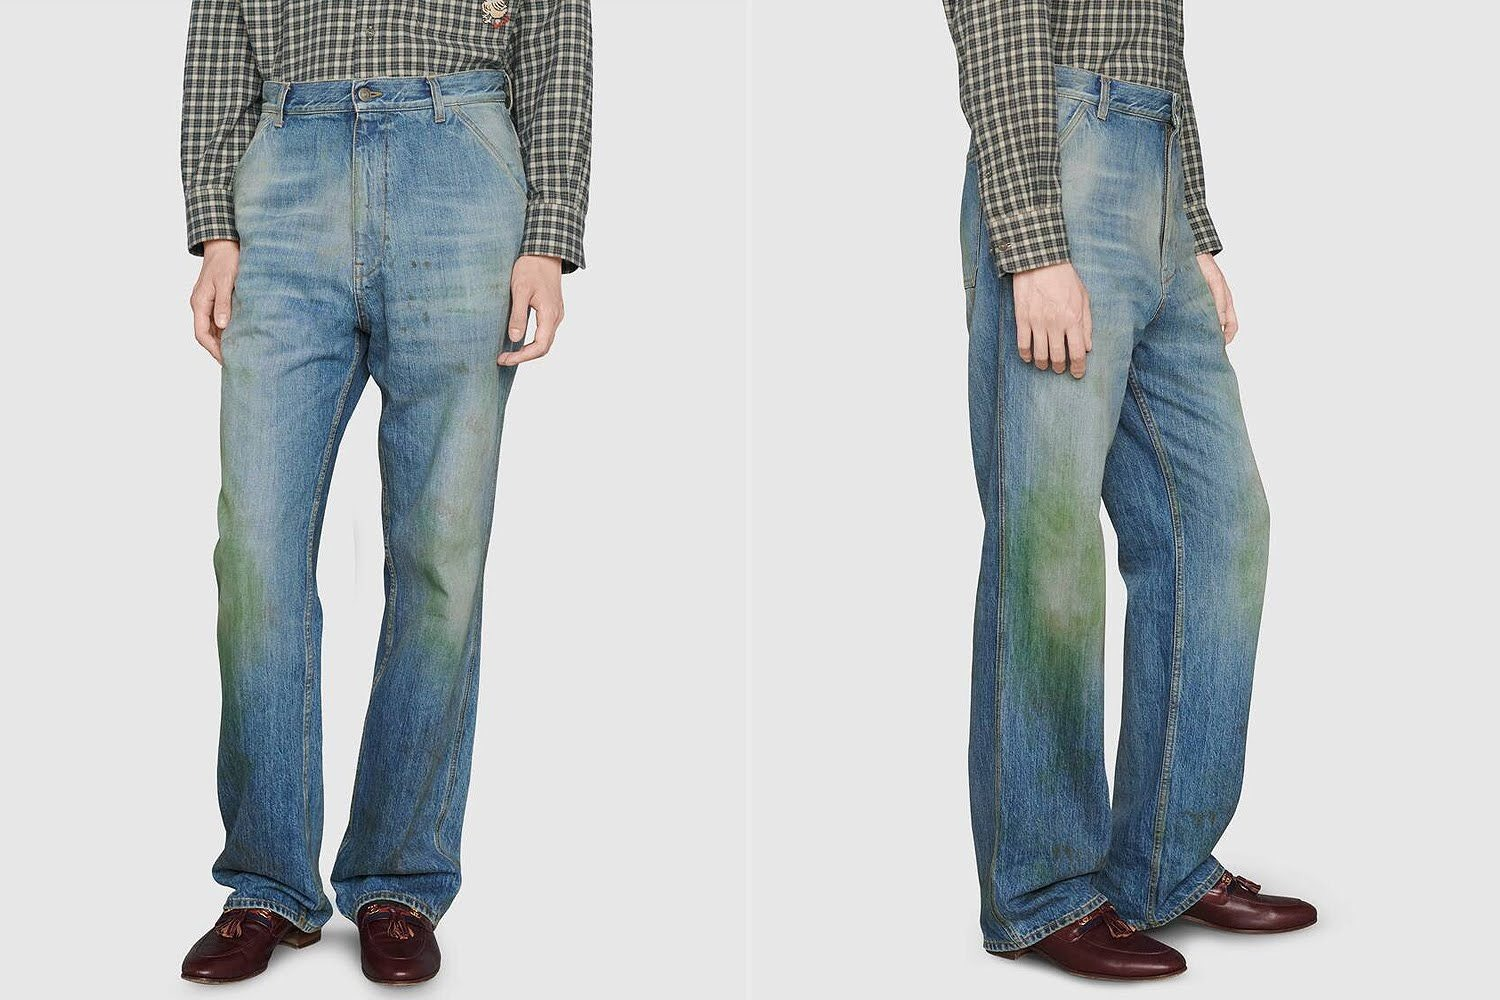 Gucci brings eco friendly jeans at high cost